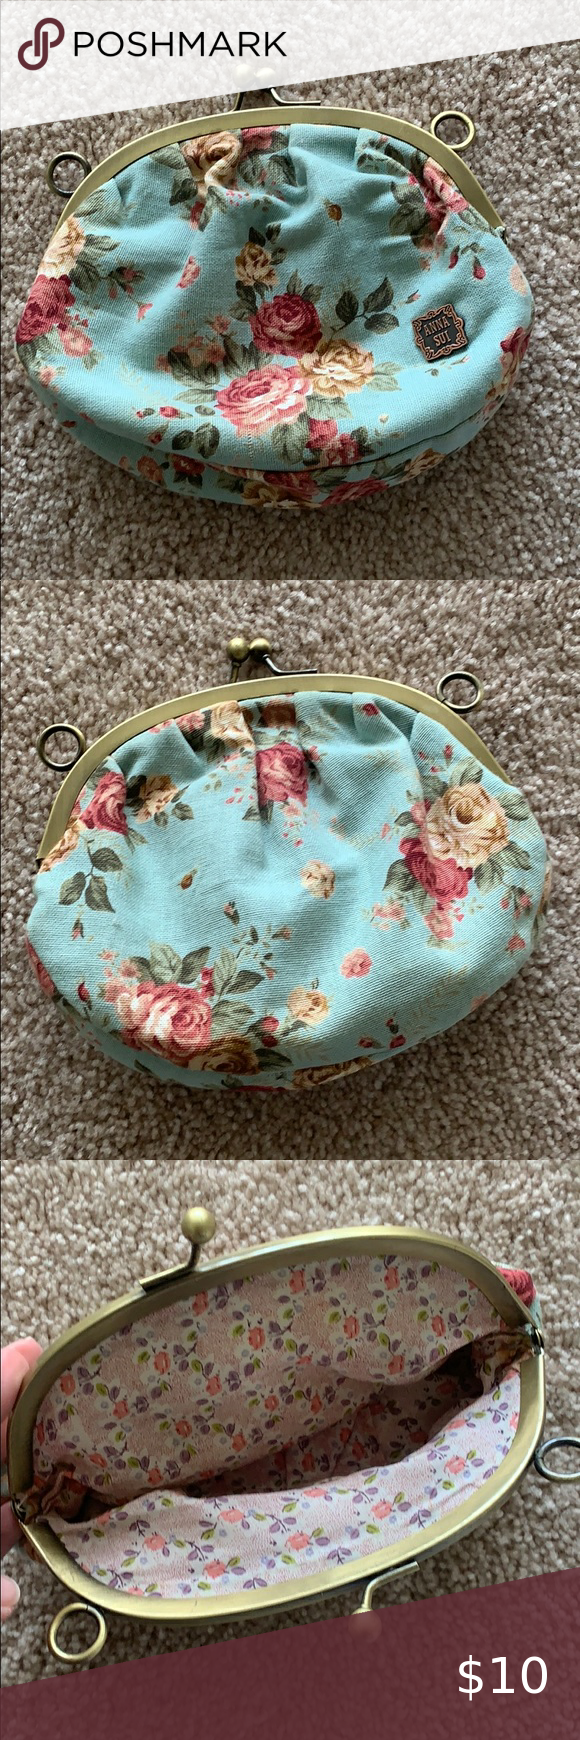 NEW 8 items for 15💃Anna sui floral makeup bag in 2020